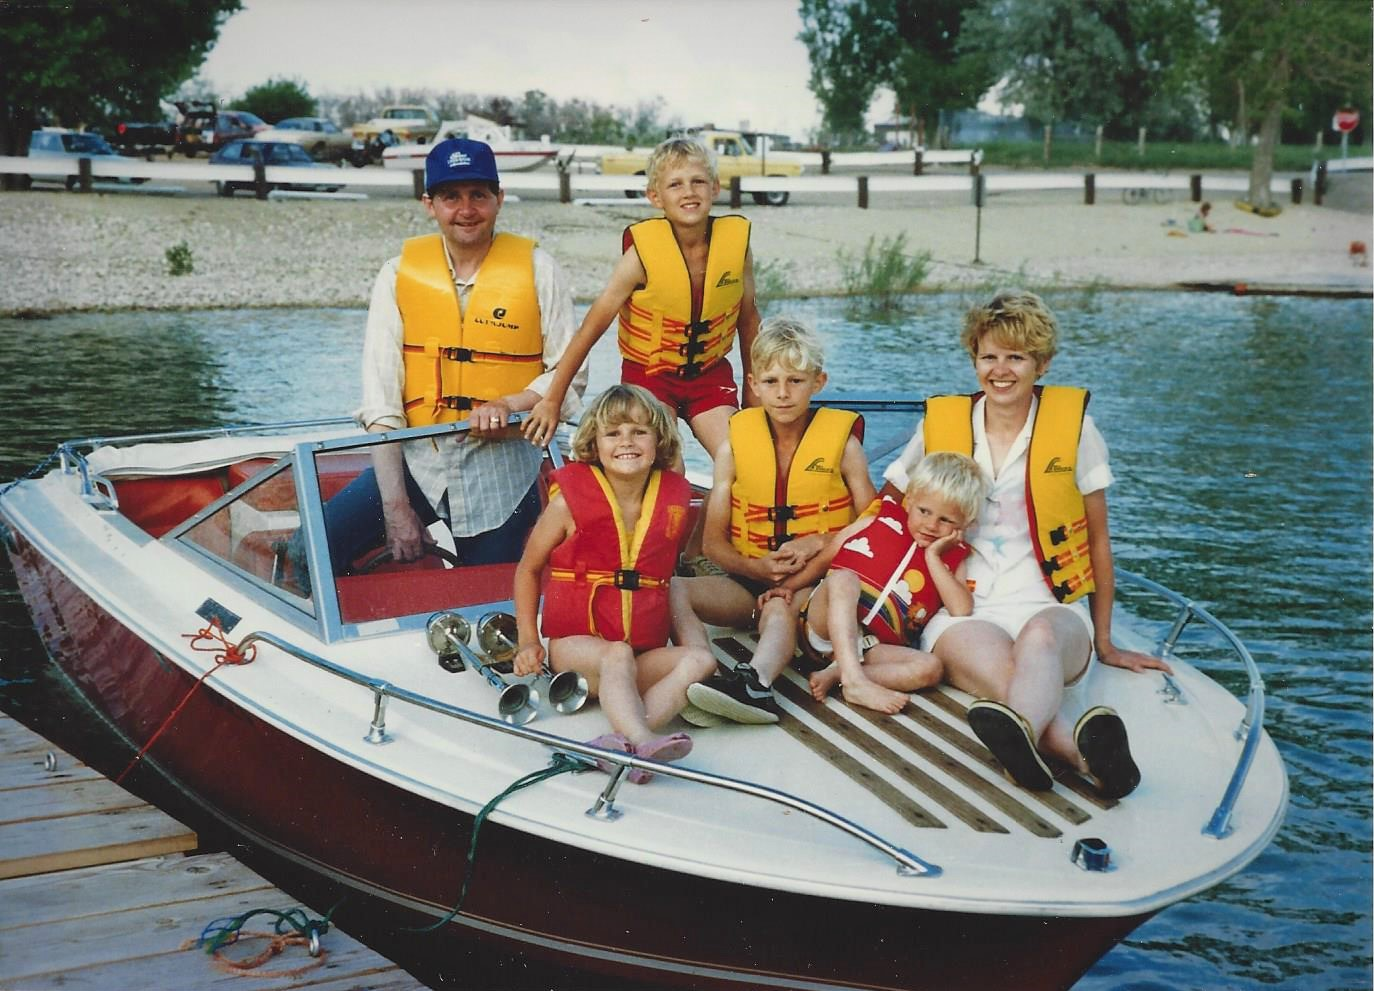 family on boat - edited